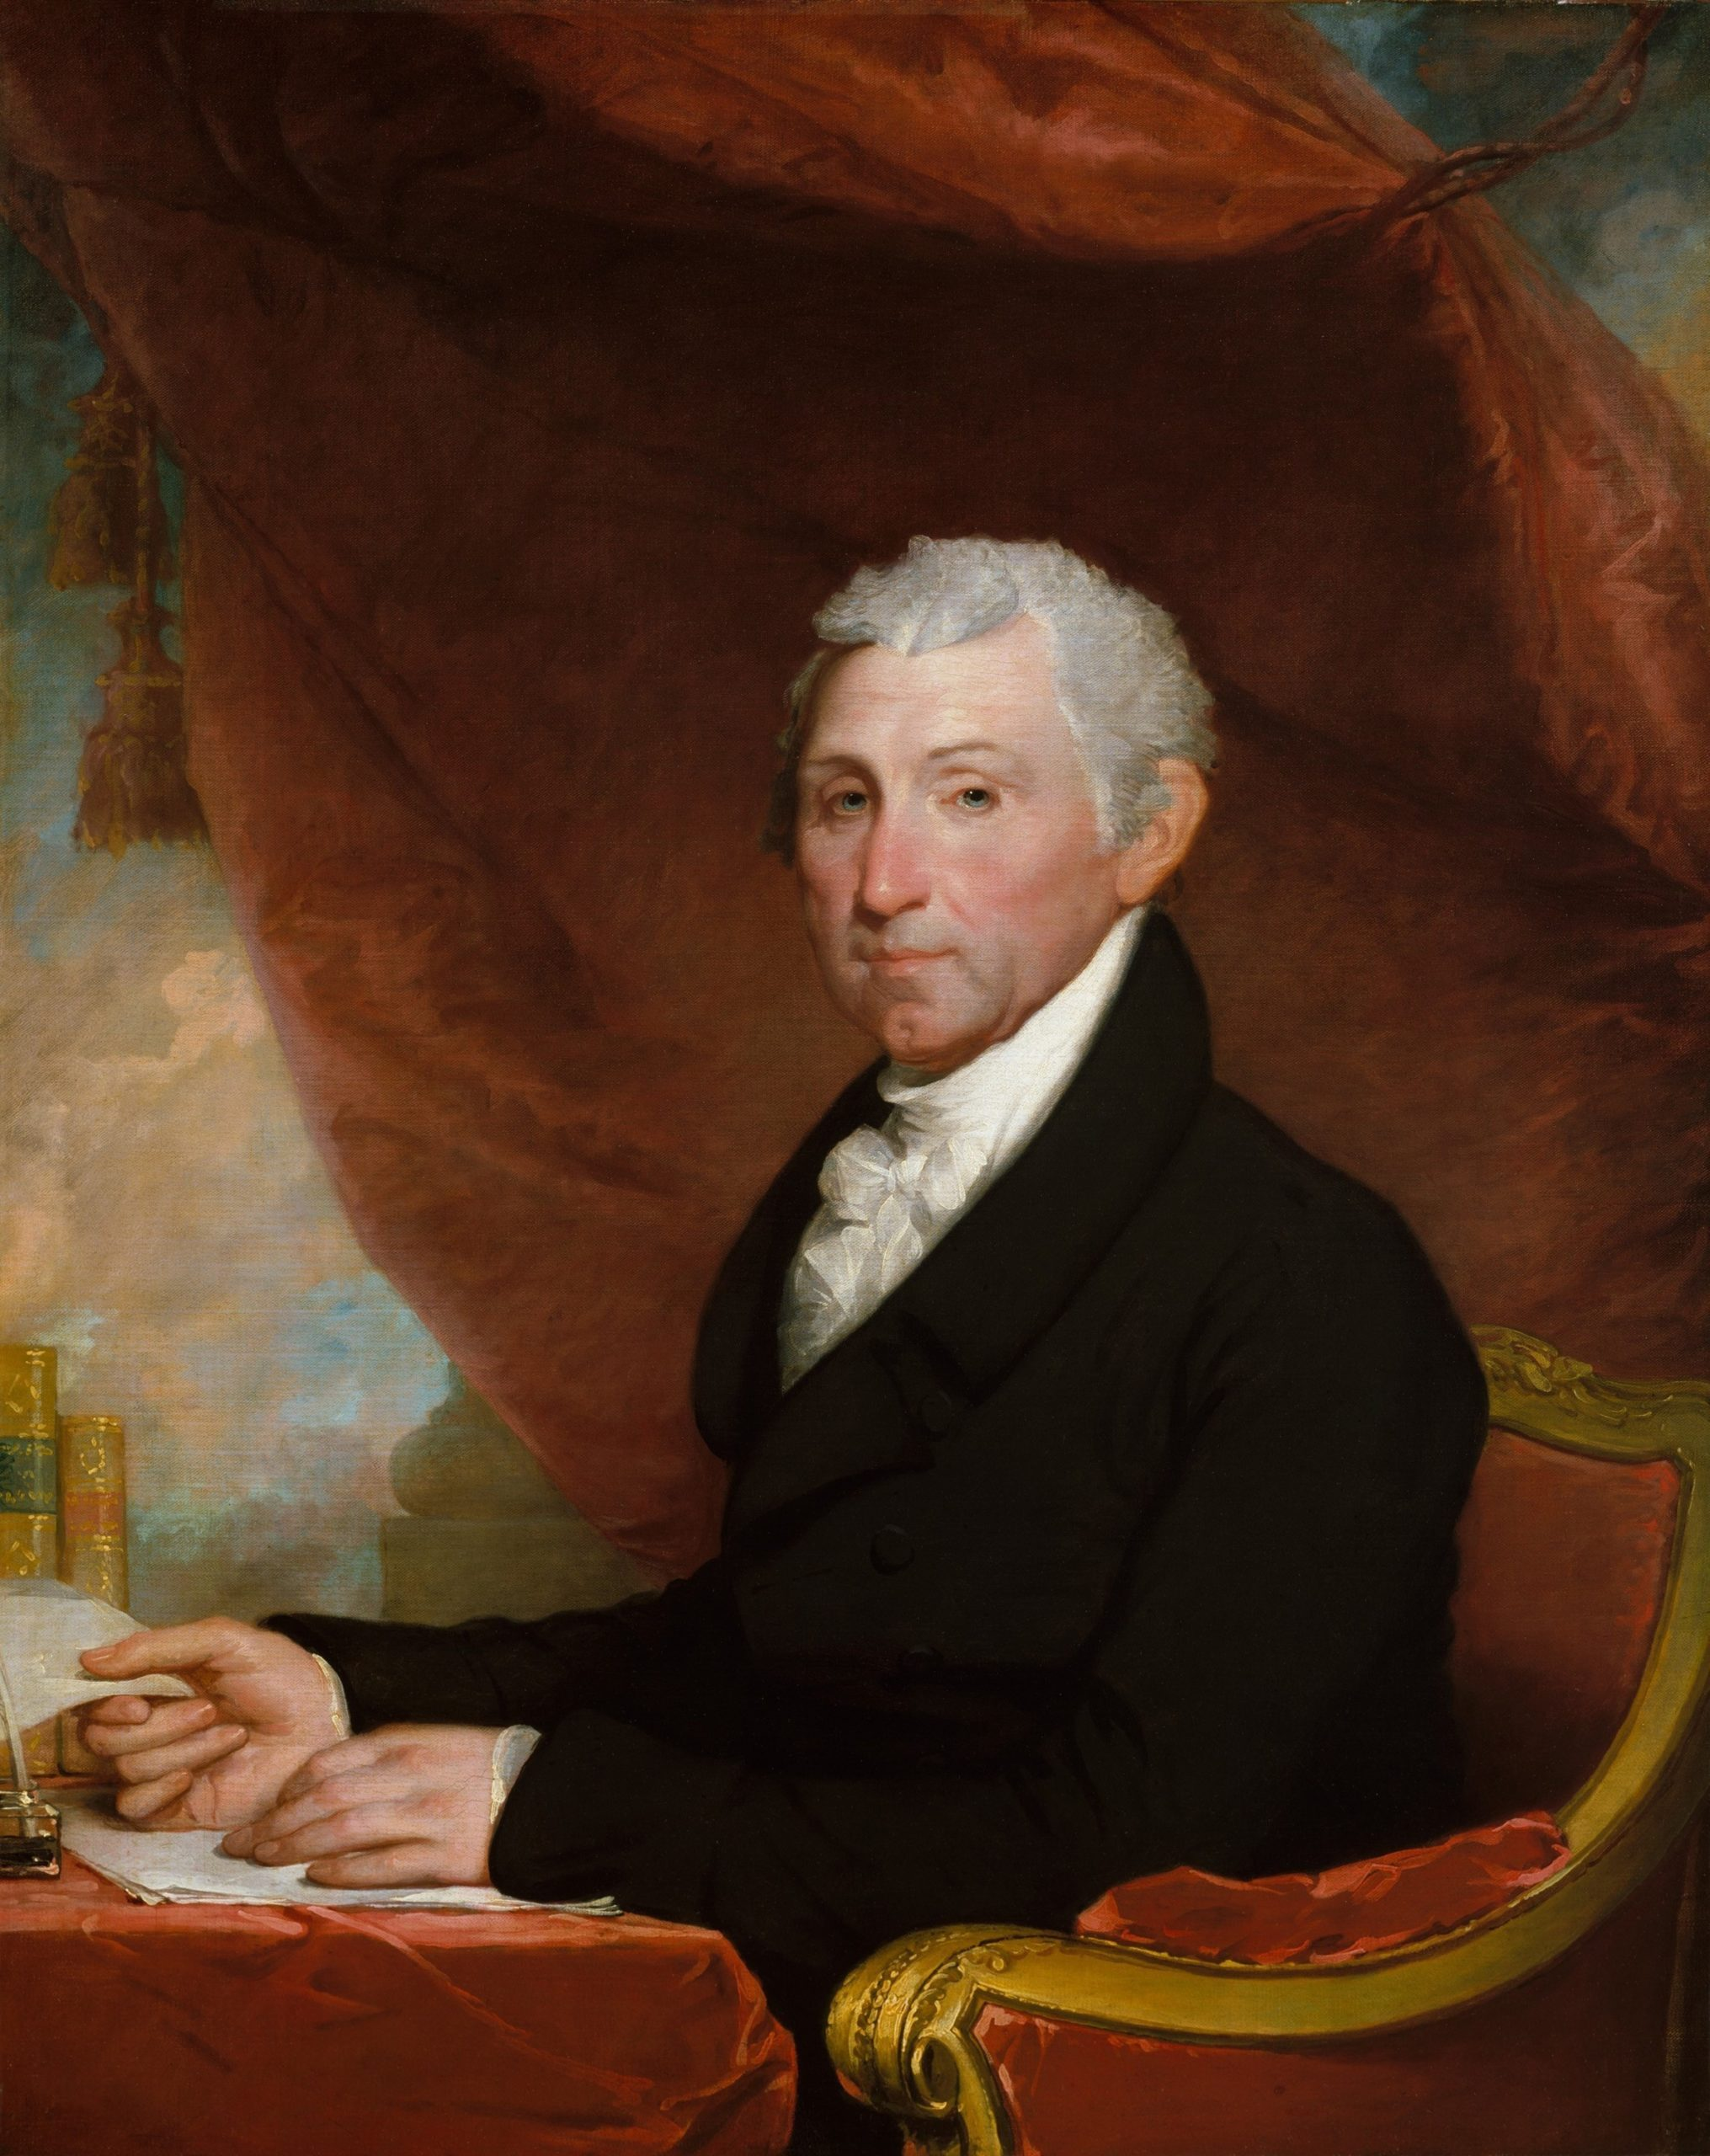 Served from 1817 to 1825.  He oversaw major westward expansion as President of the United States.